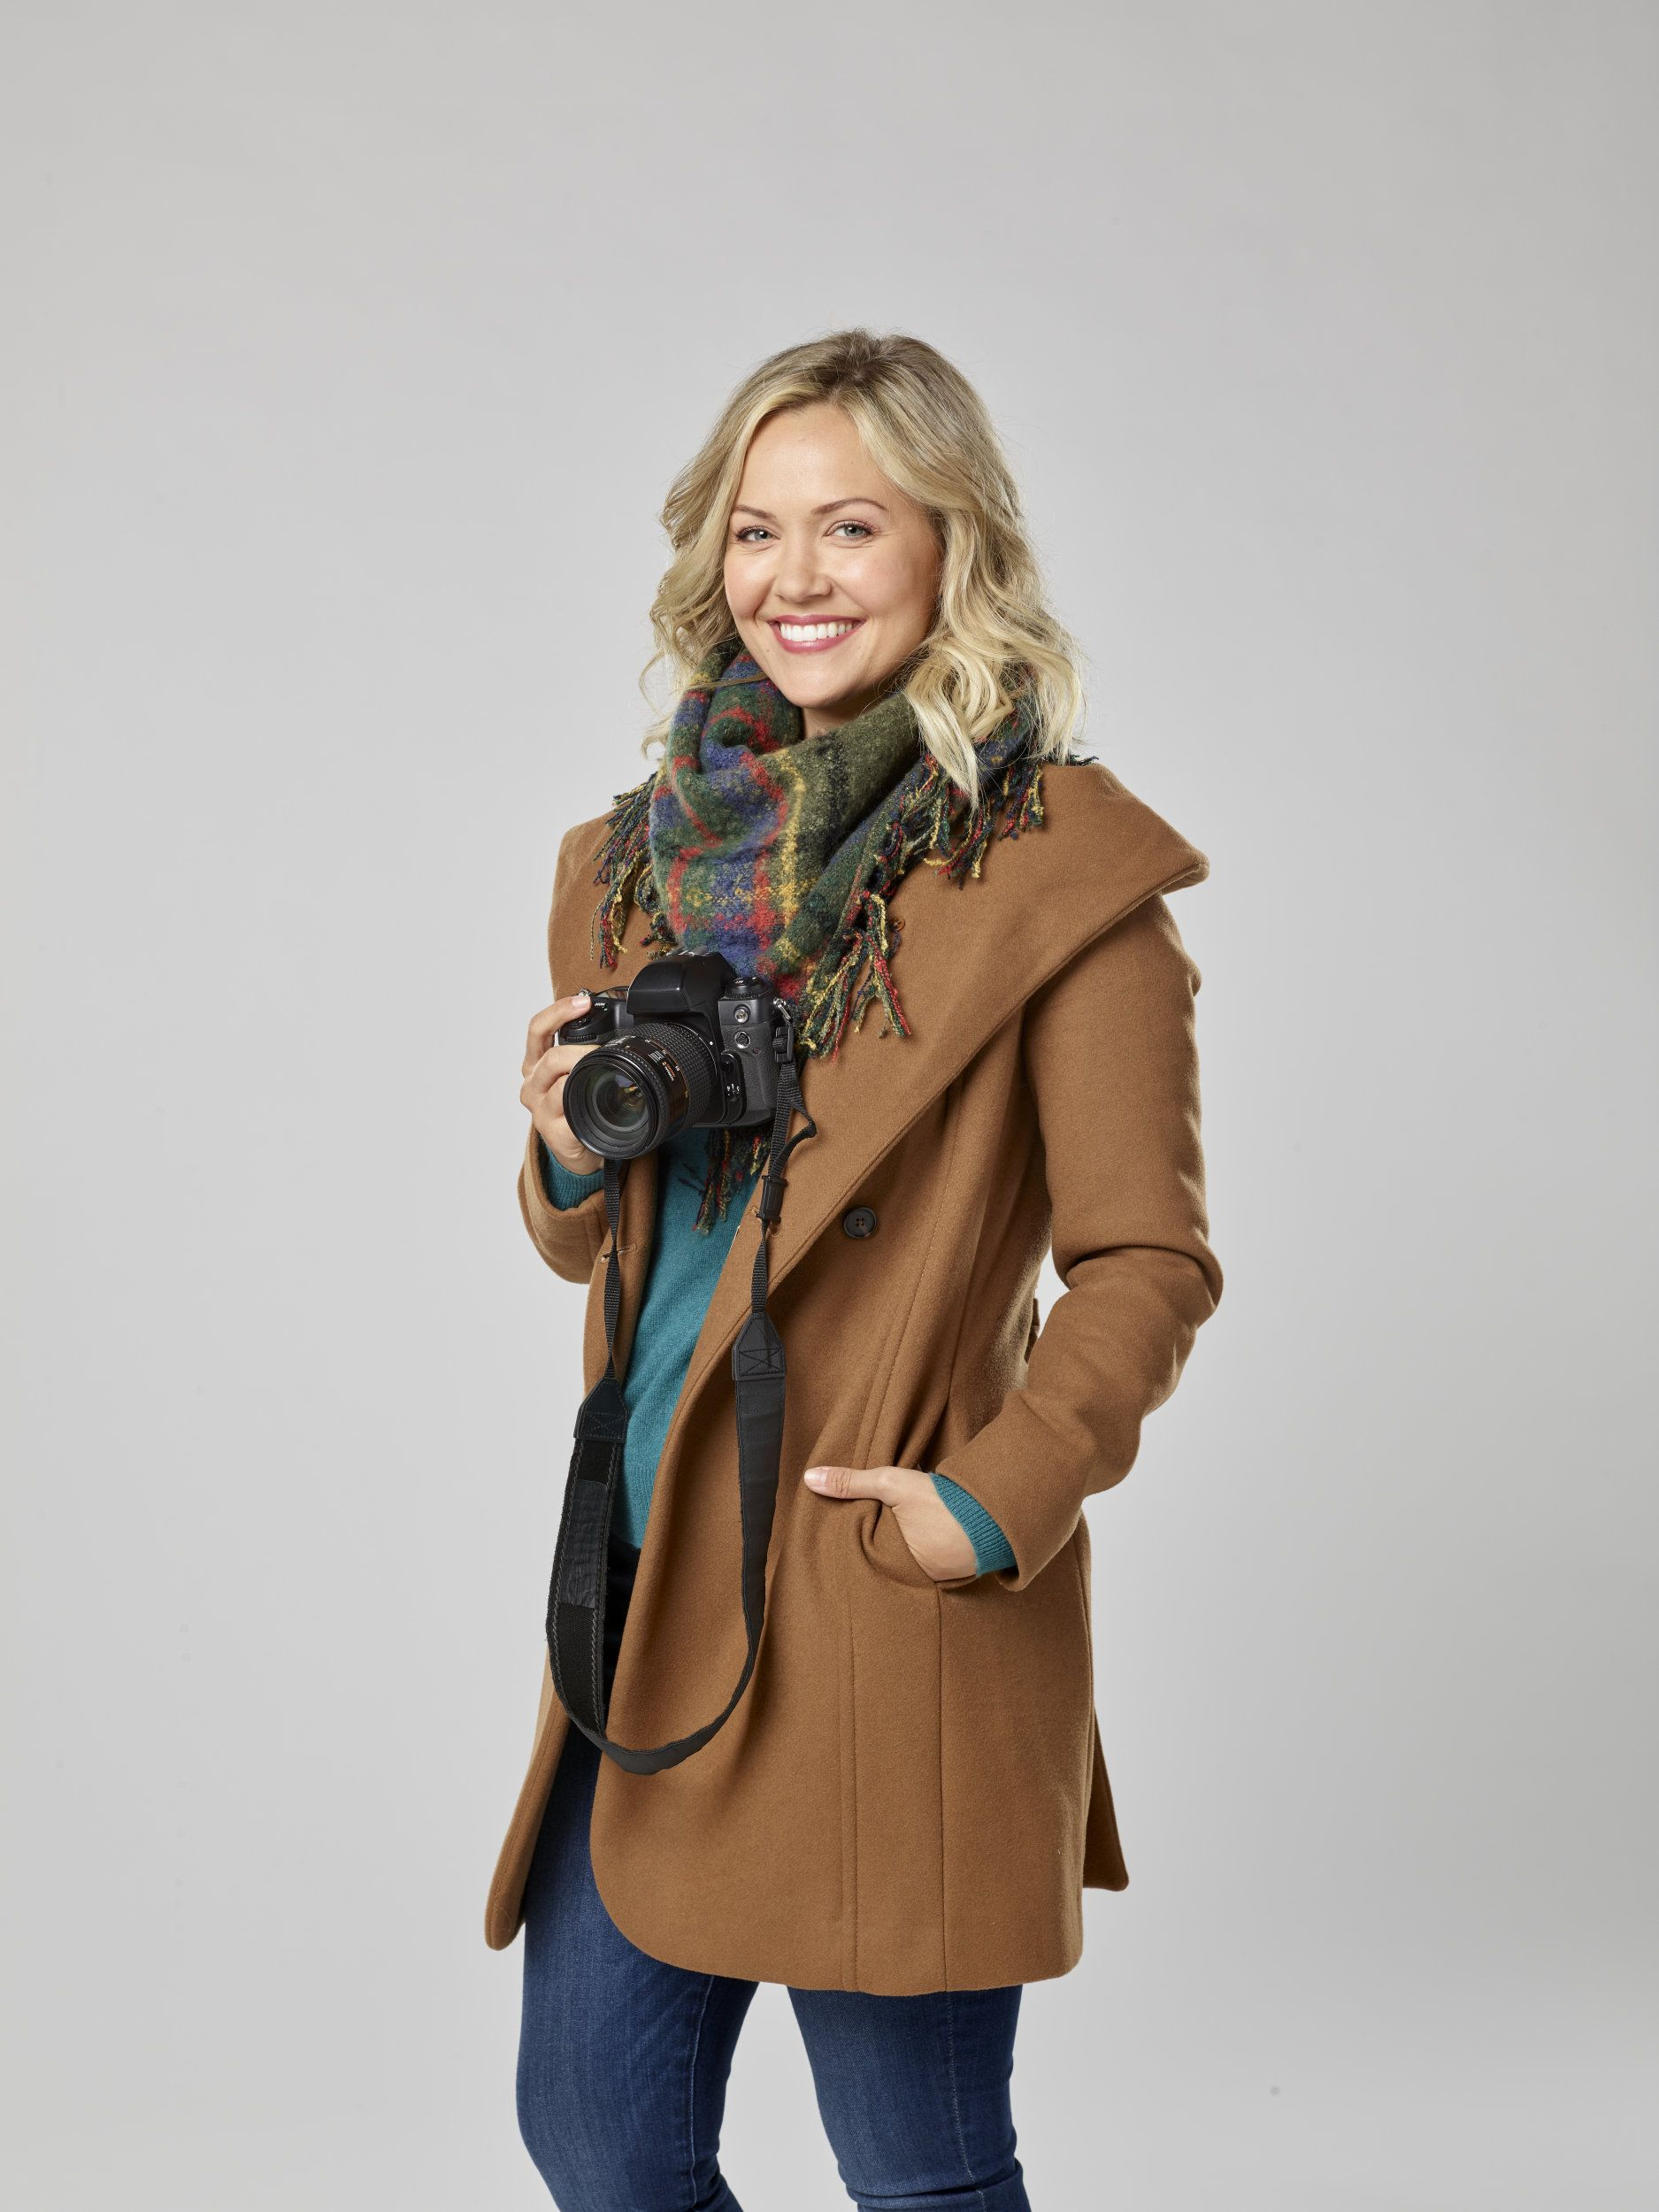 """Find out more about the cast of the Hallmark Movies & Mysteries original movie """"Christmas Bells ..."""